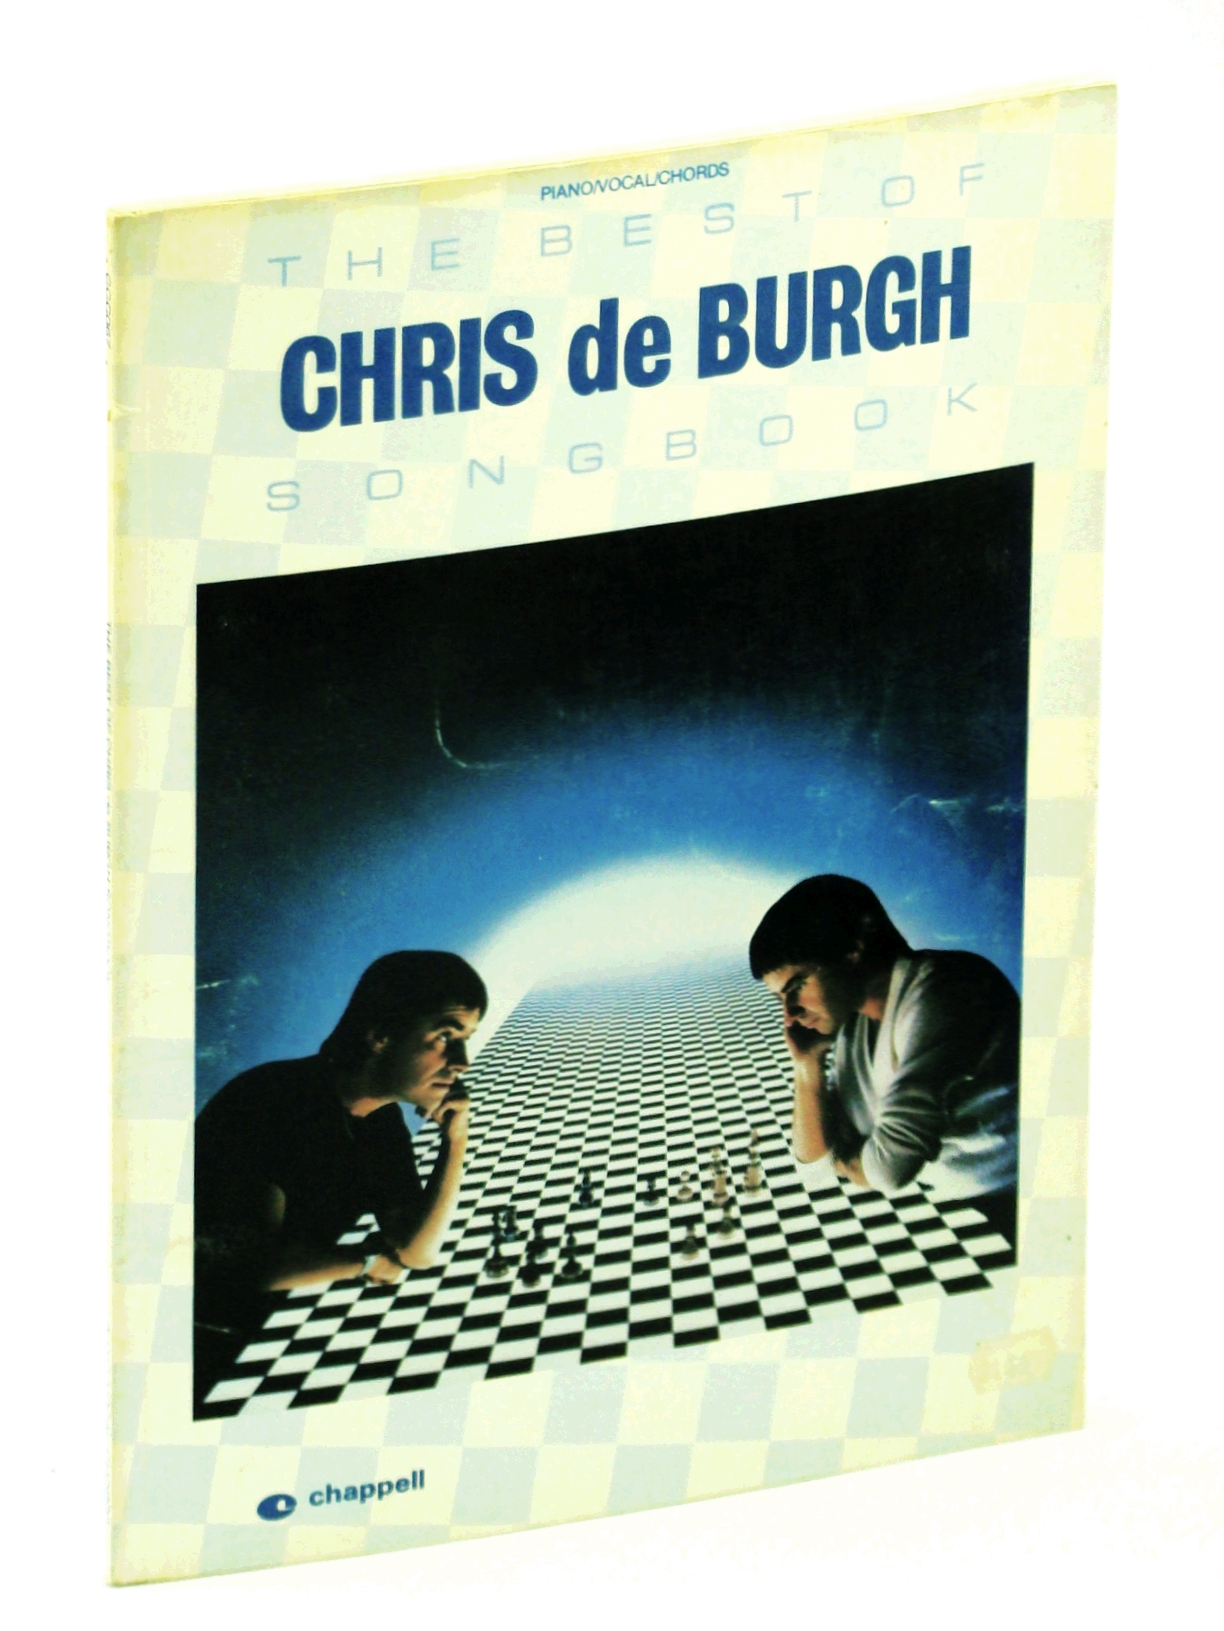 Image for The Best of Chris De Burgh Songbook [Song Book] - Sheet Music for Piano and Voice with Guitar Chords